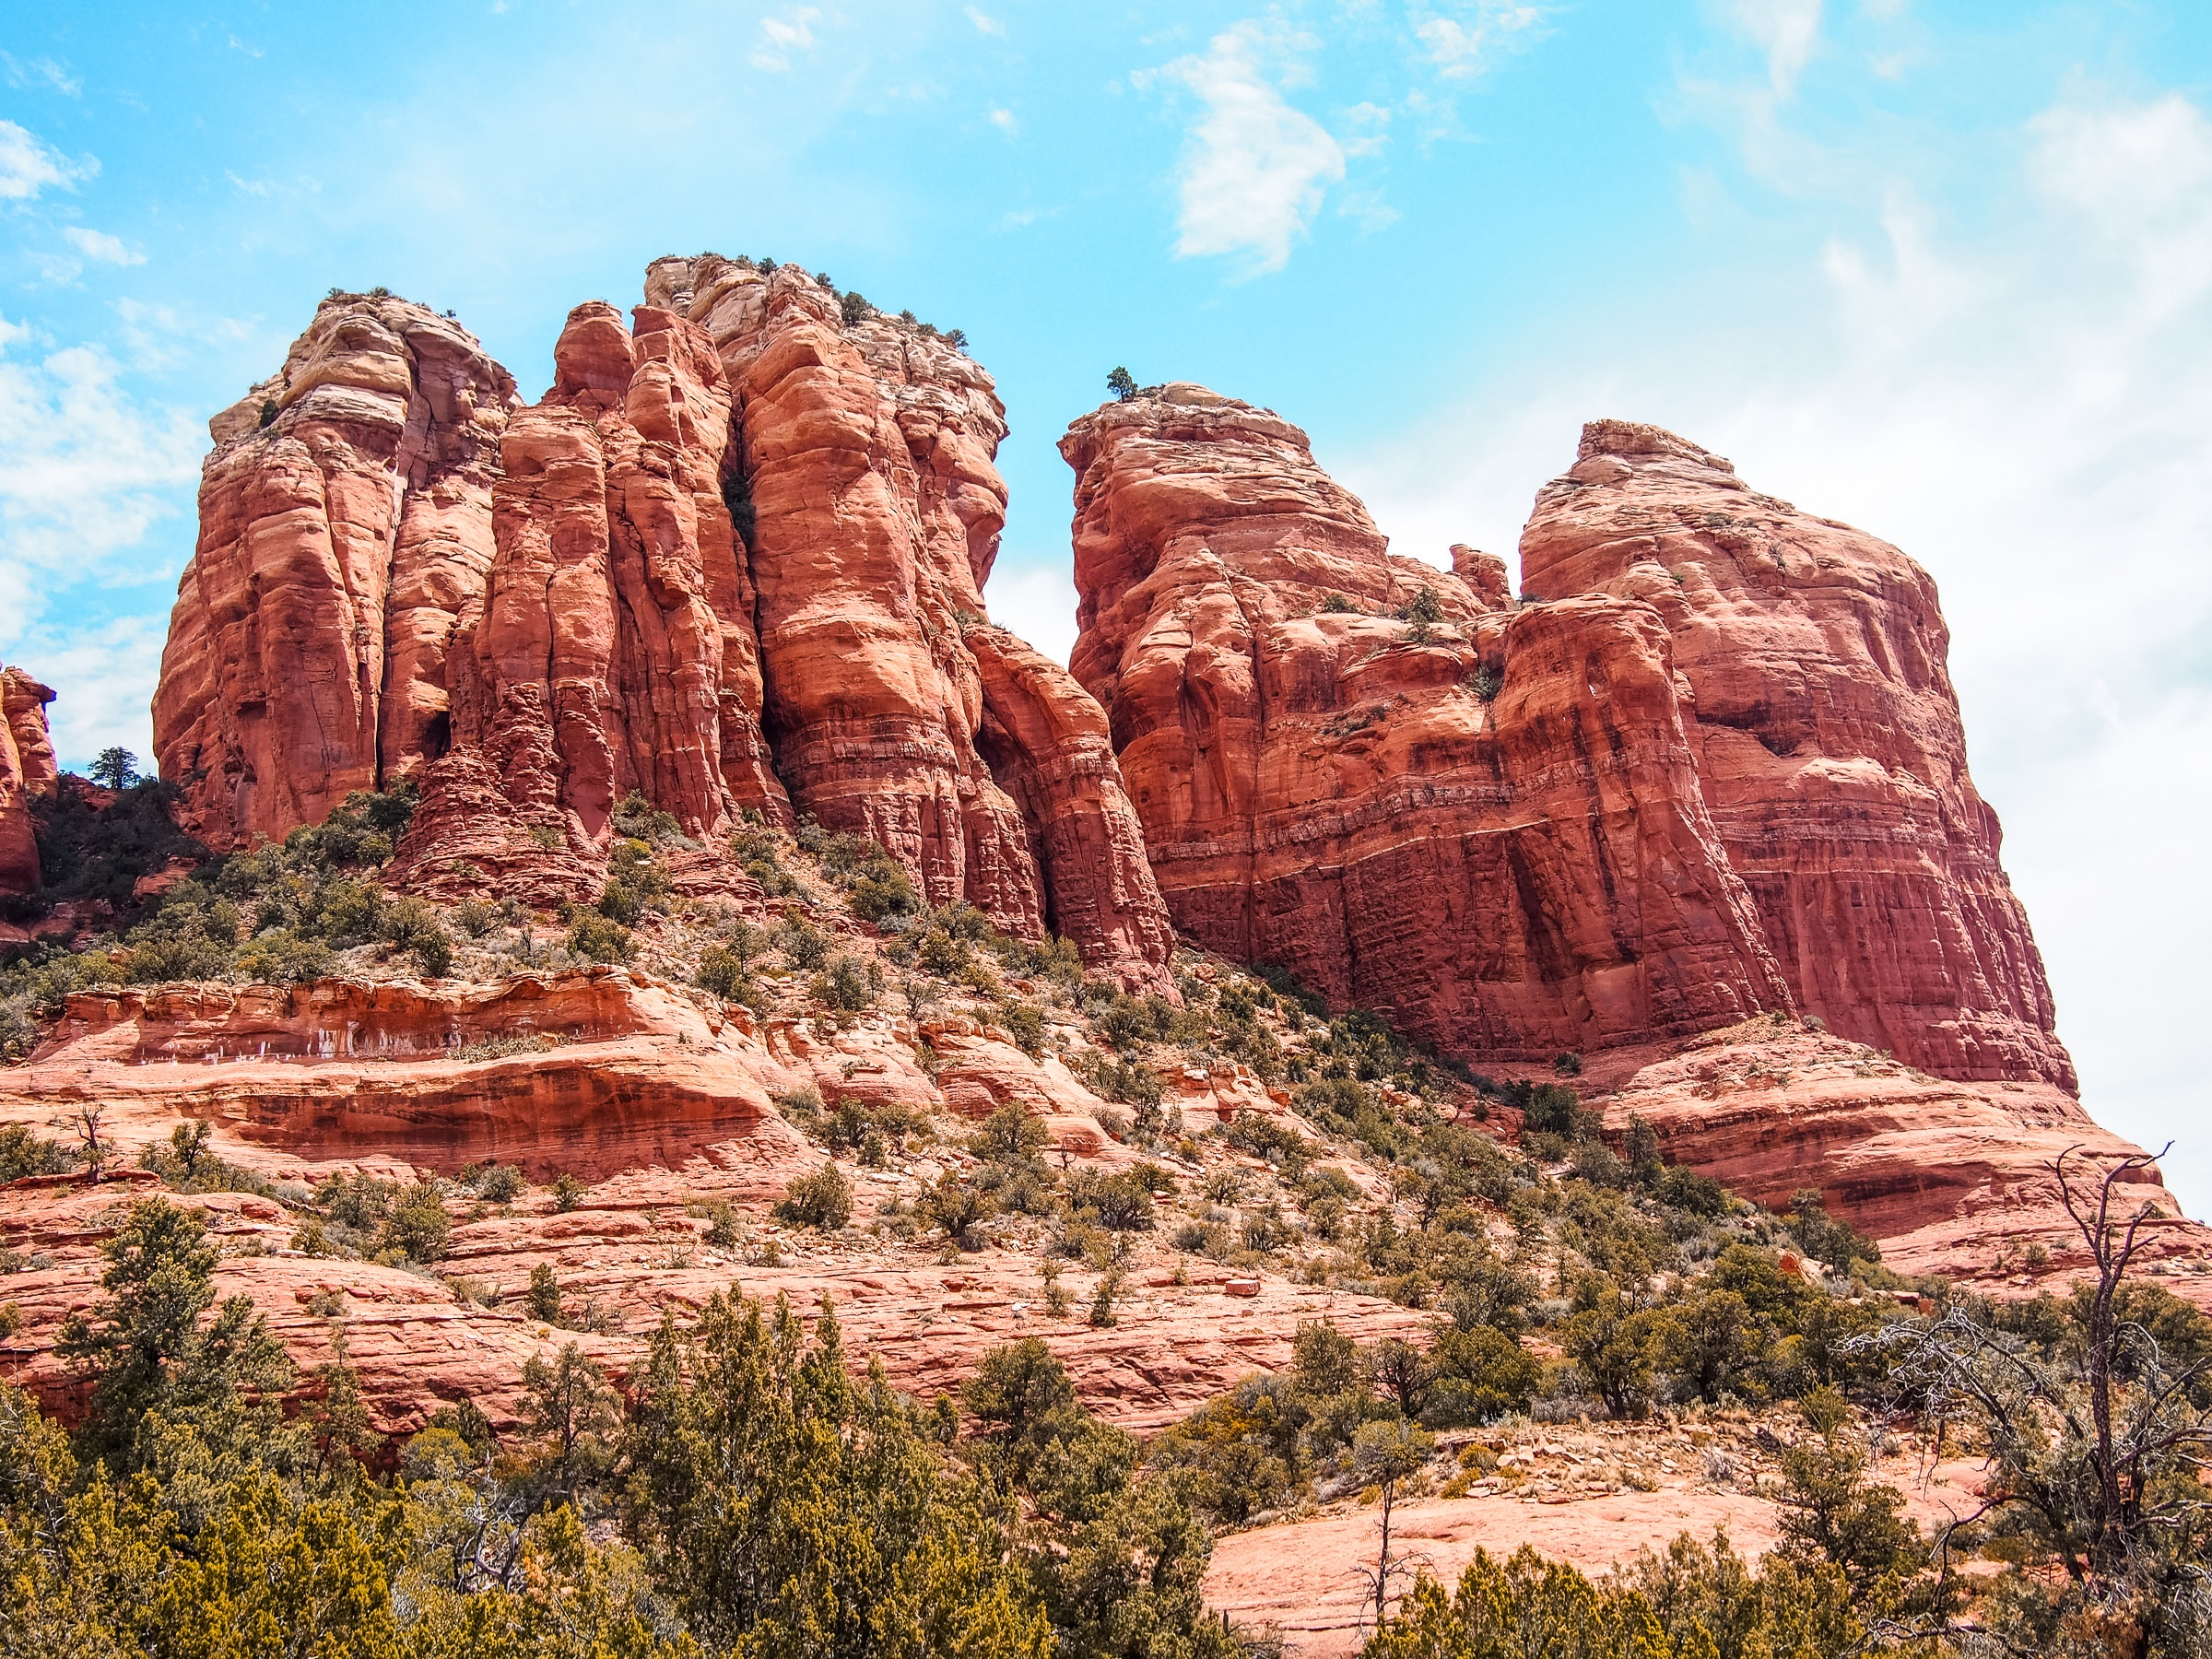 Sandstone mountain formations in the desert of Utah